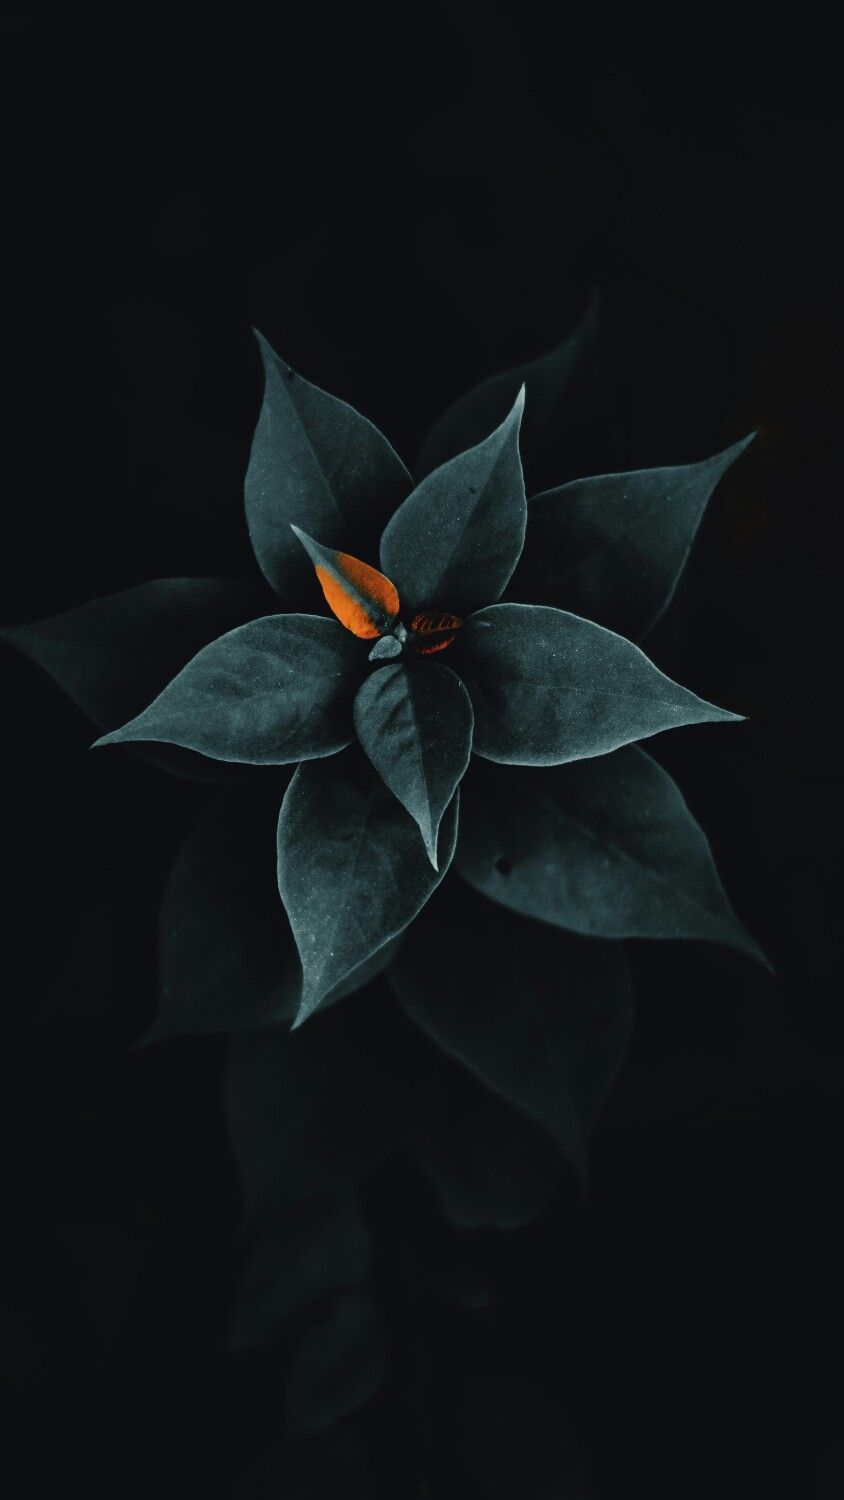 Latest List Of Great Black Lock Screen For Iphone X In 2020 Flowers Black Background Black Background Photography Leaves Wallpaper Iphone